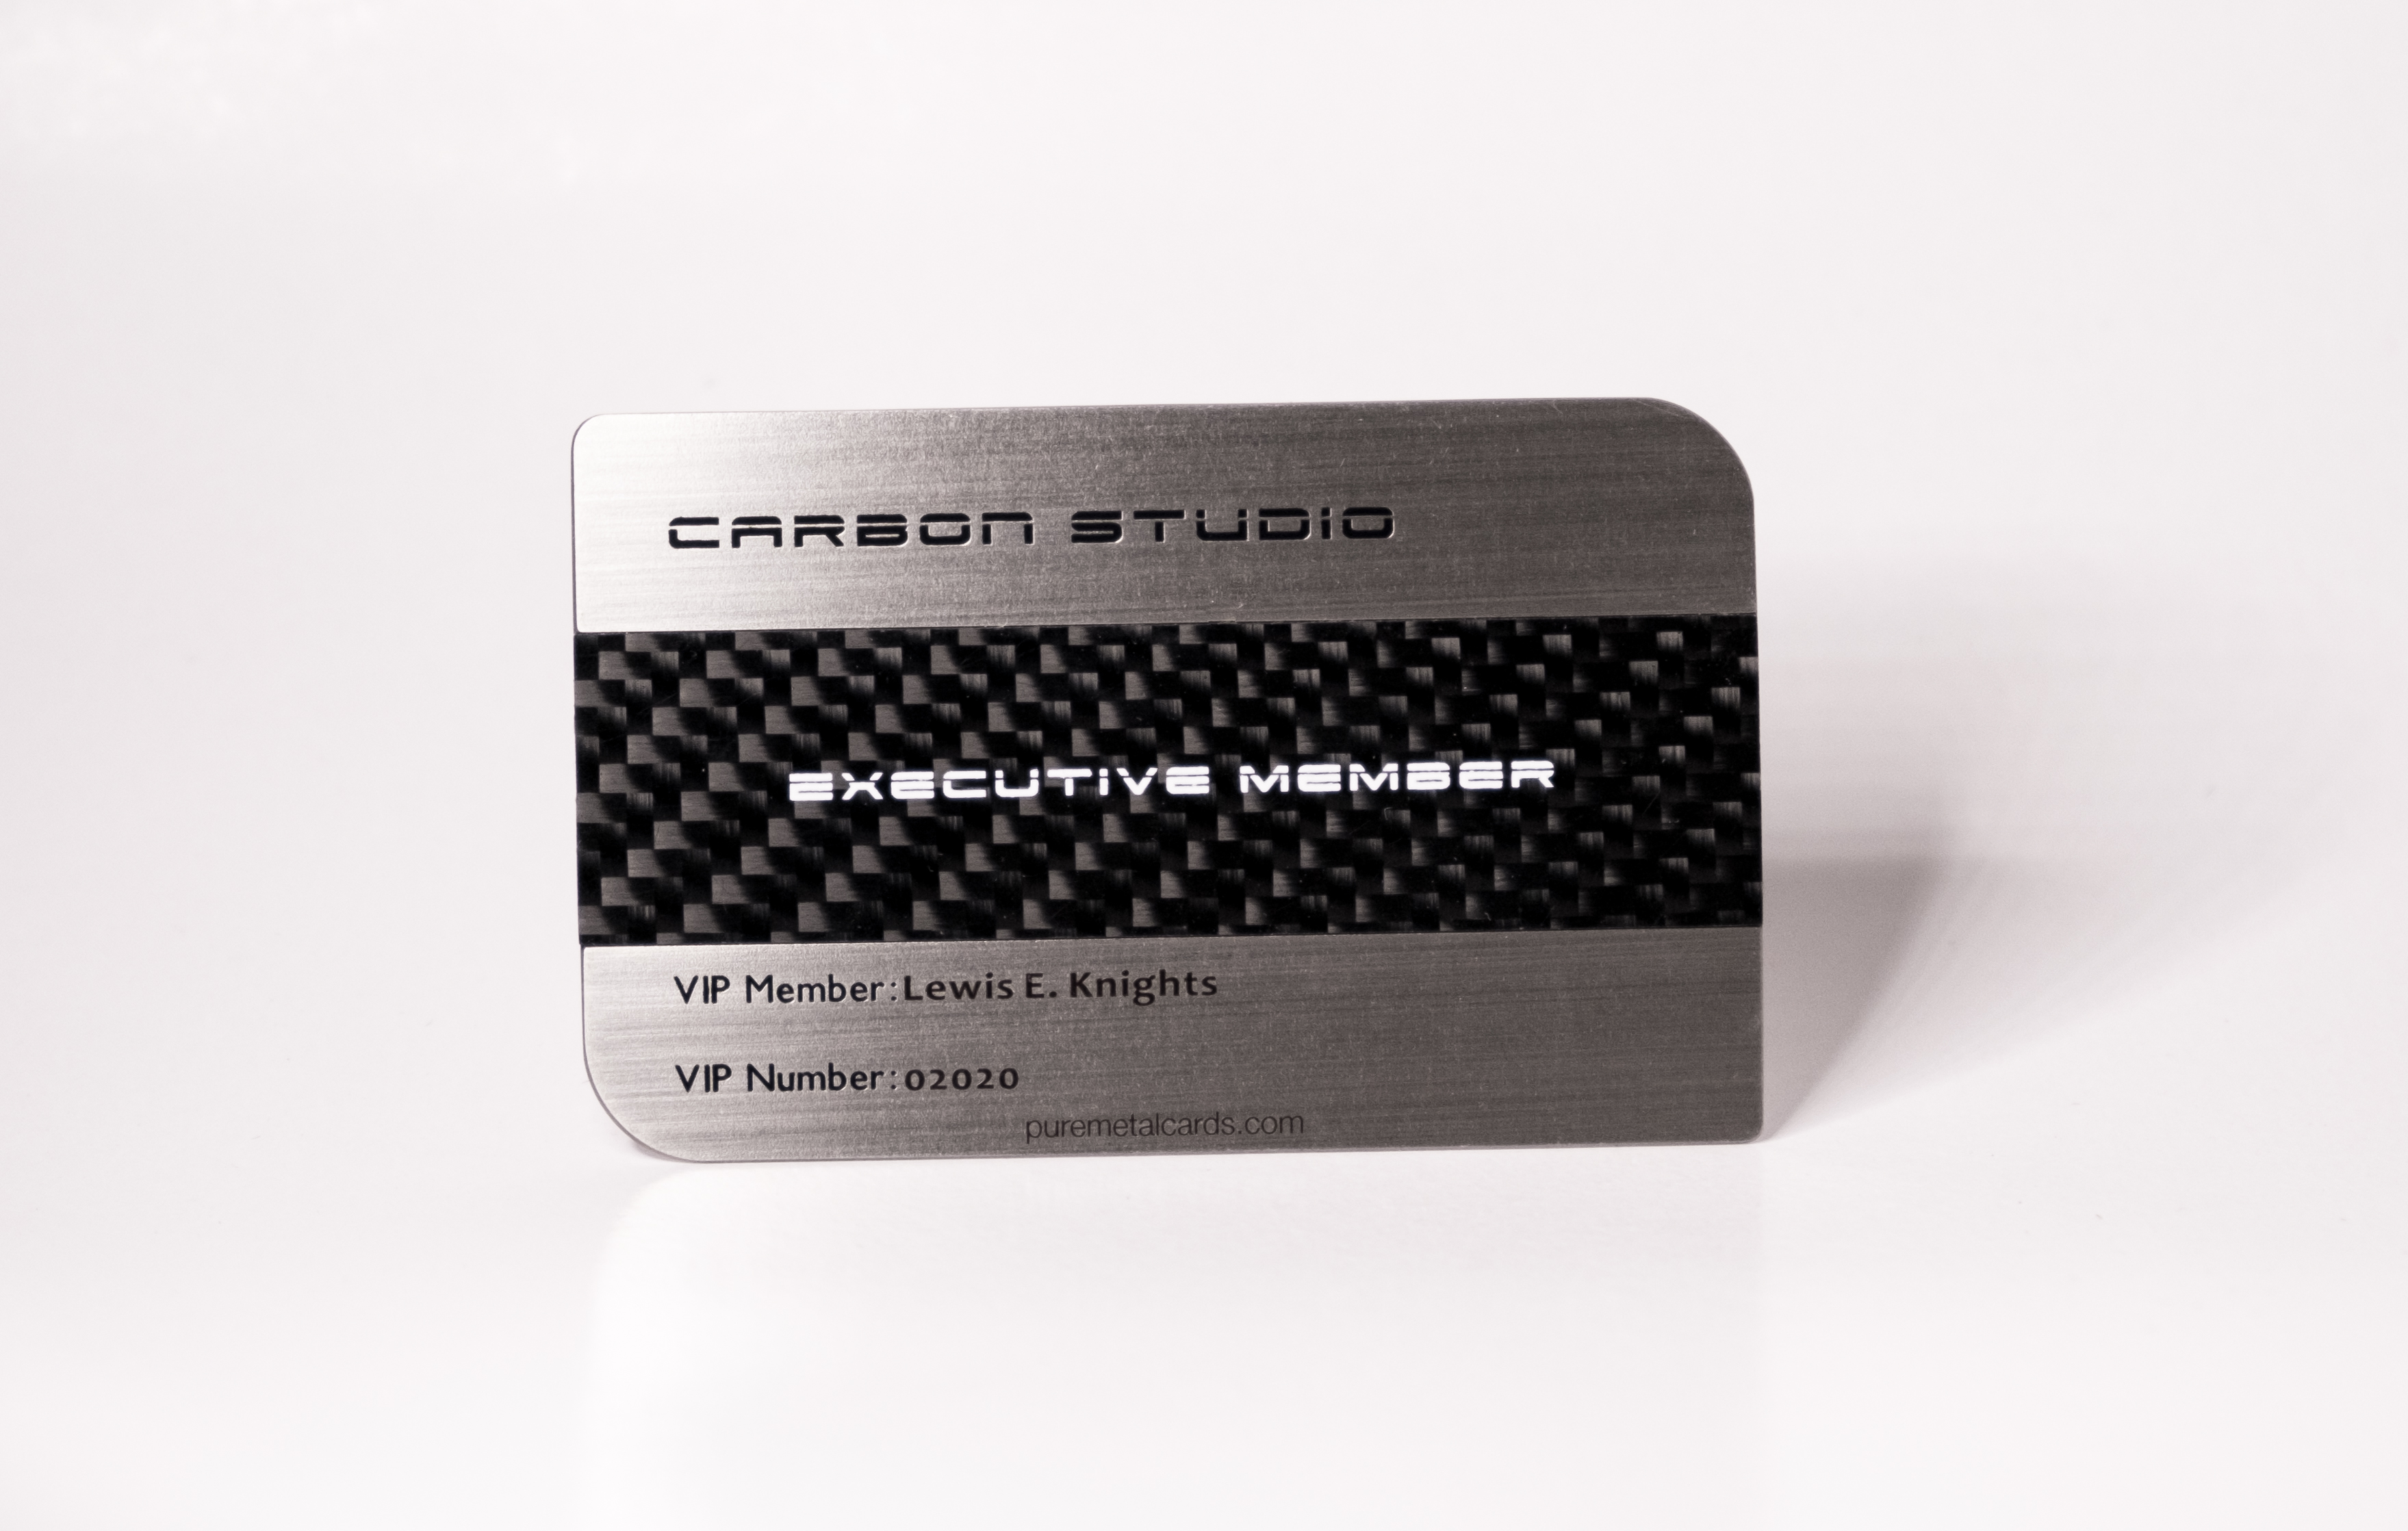 Brushed stainless steel carbon fiber business cards pure metal cards dual finish steel carbon fiber card magicingreecefo Gallery